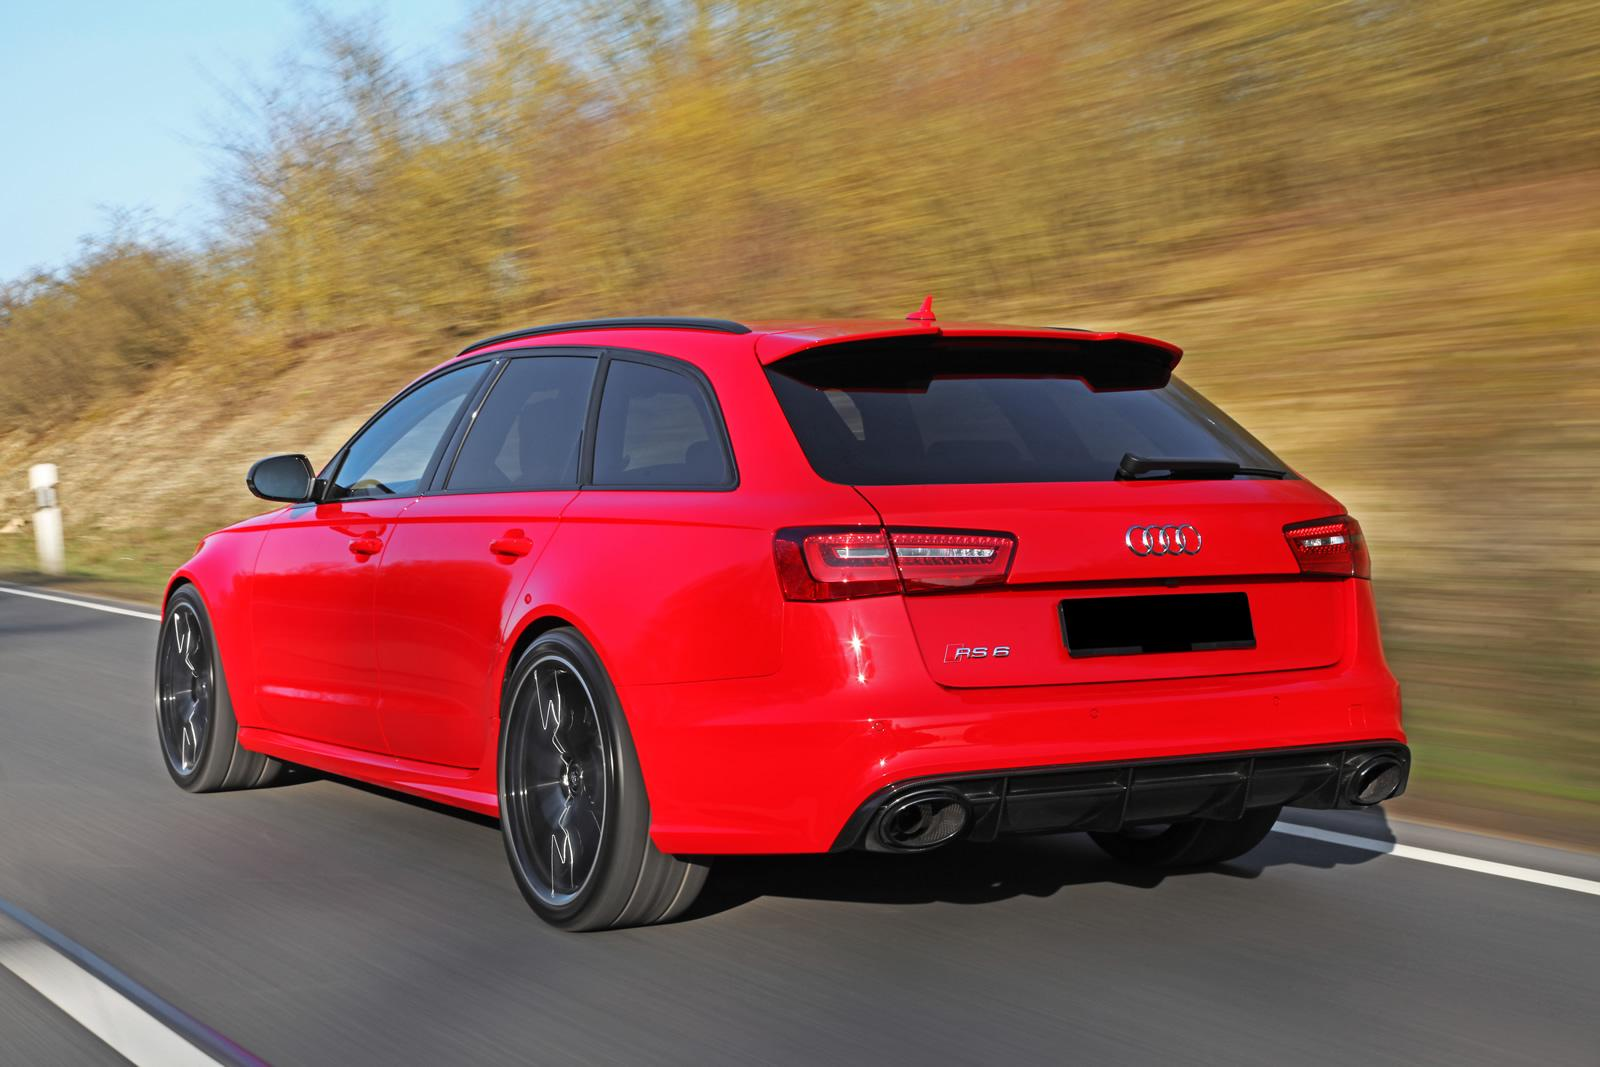 Audi Rs6 By Hperformance Is Red And It Has 700 Hp Autoevolution